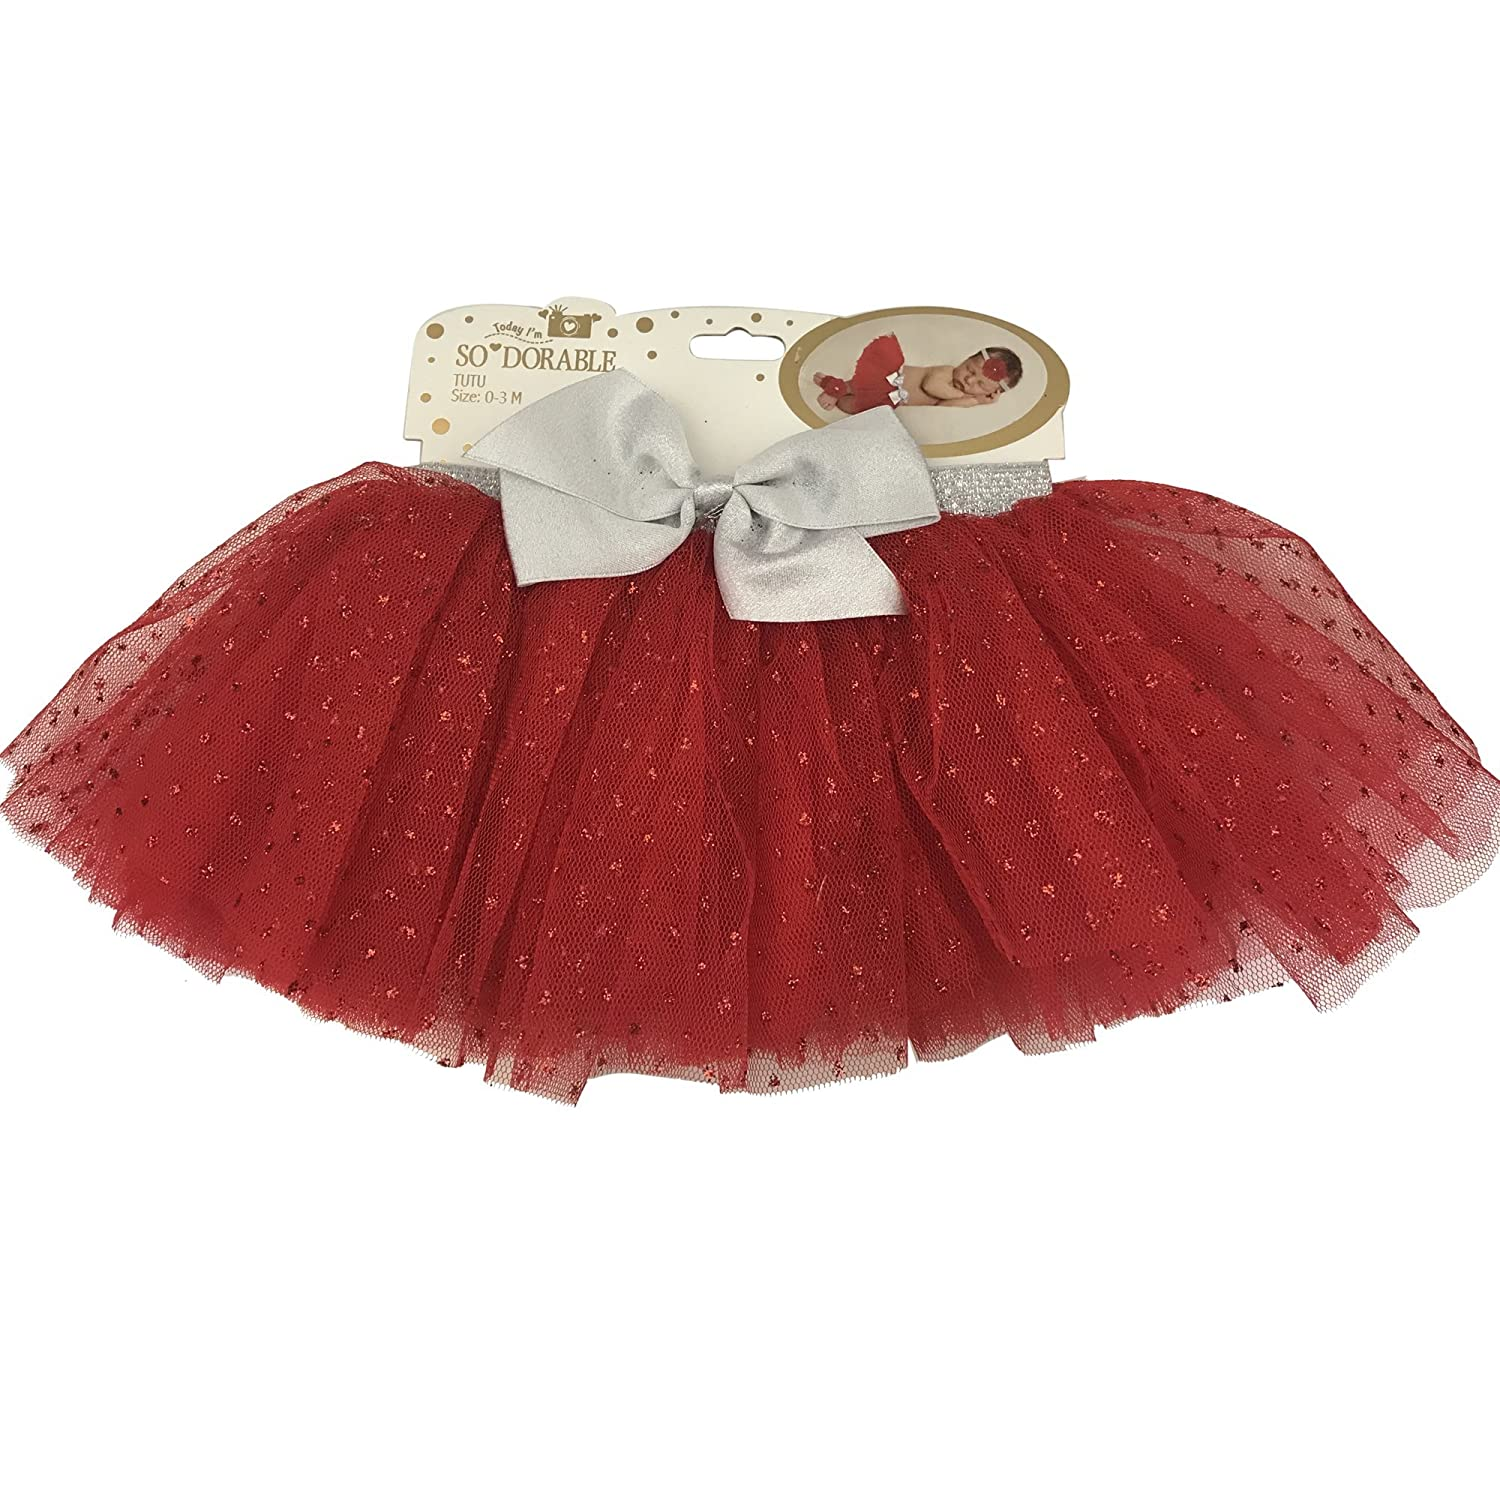 So Dorable Tutu SoDorable Red Baby Size 0-3 Months Sprakle With Gray Bow